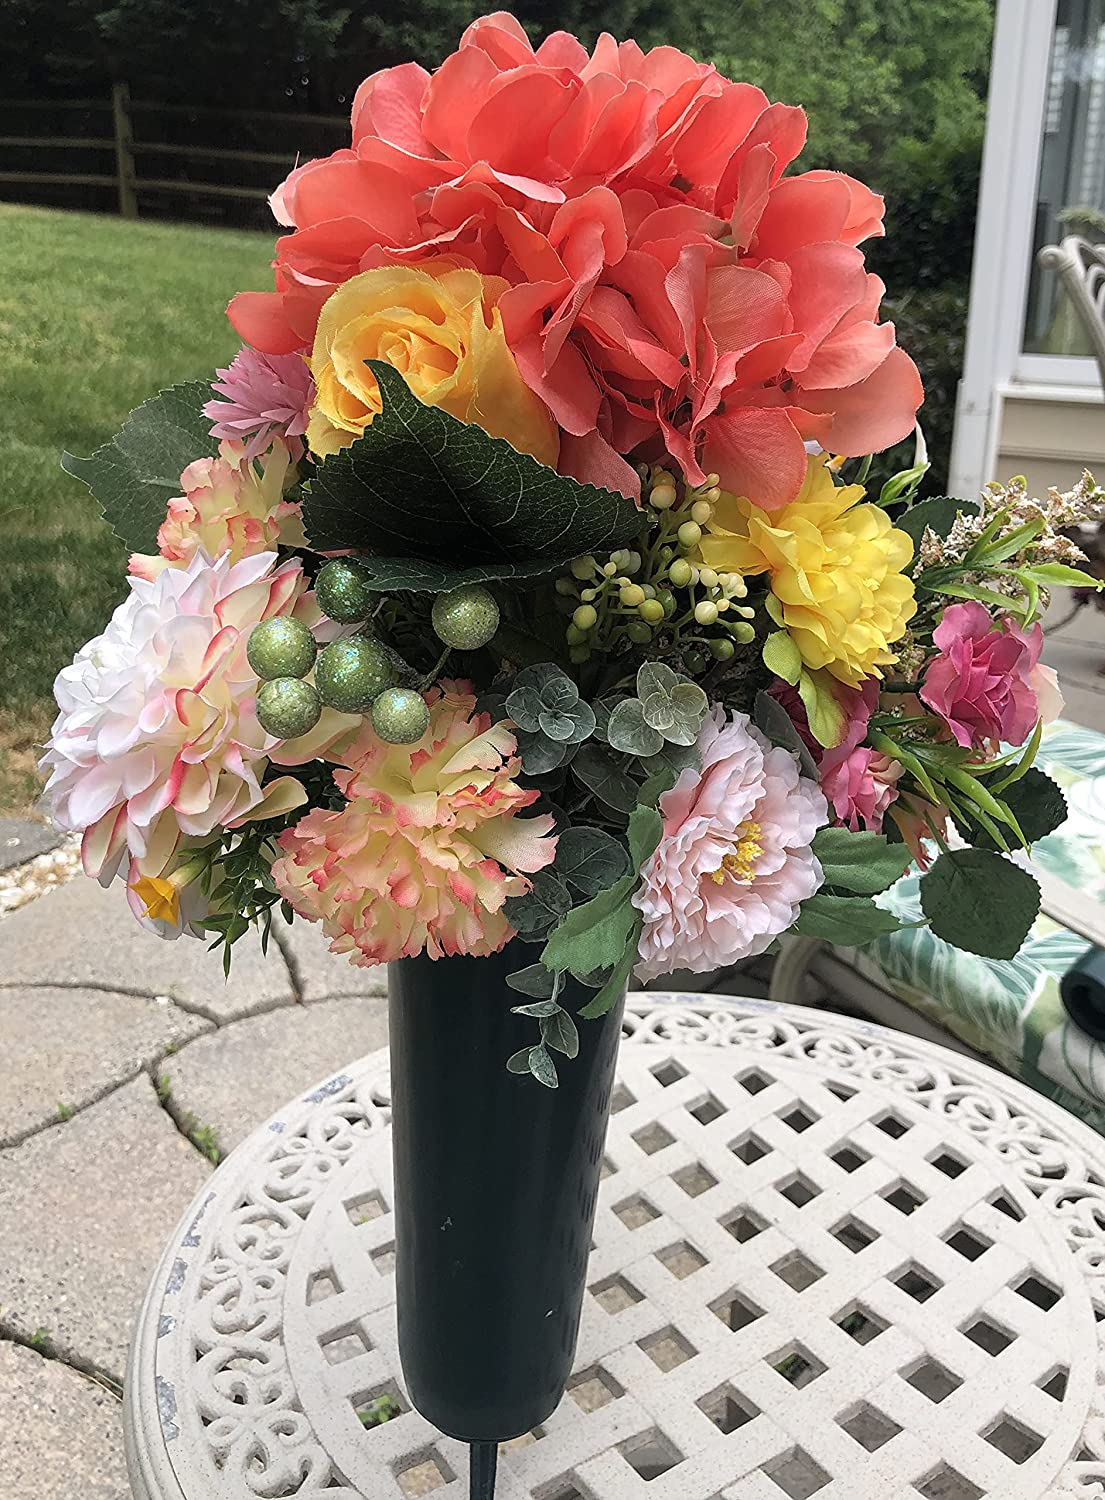 Cemetery Memorial Gravesite 35% OFF online shop Flowers Peach Pink and Yellow